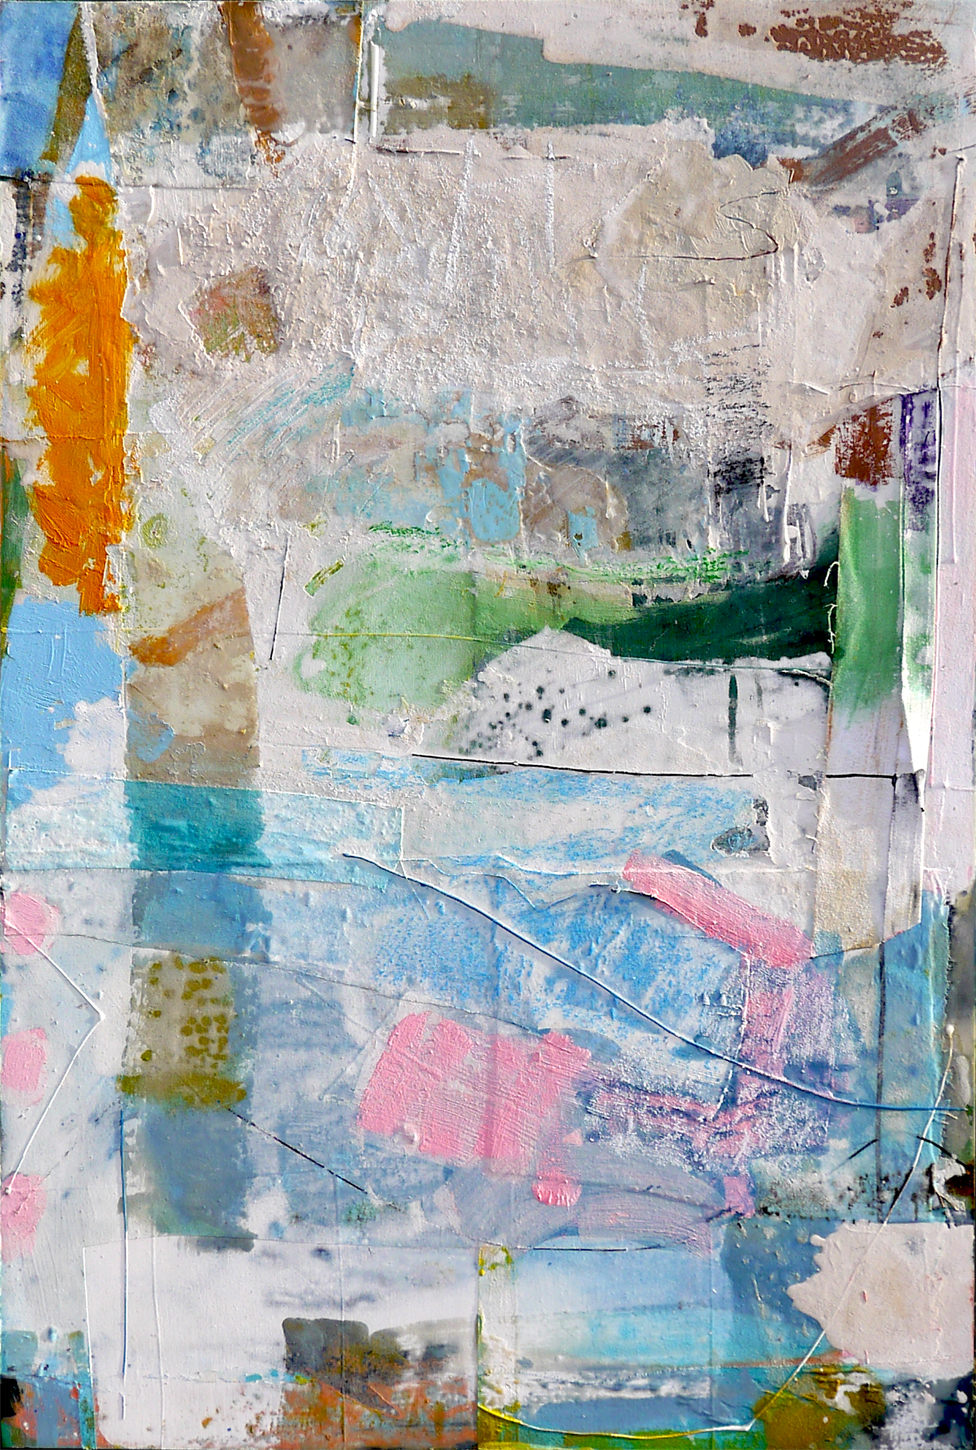 White 2019 61x91cm mixed media on board Paintings RECENT